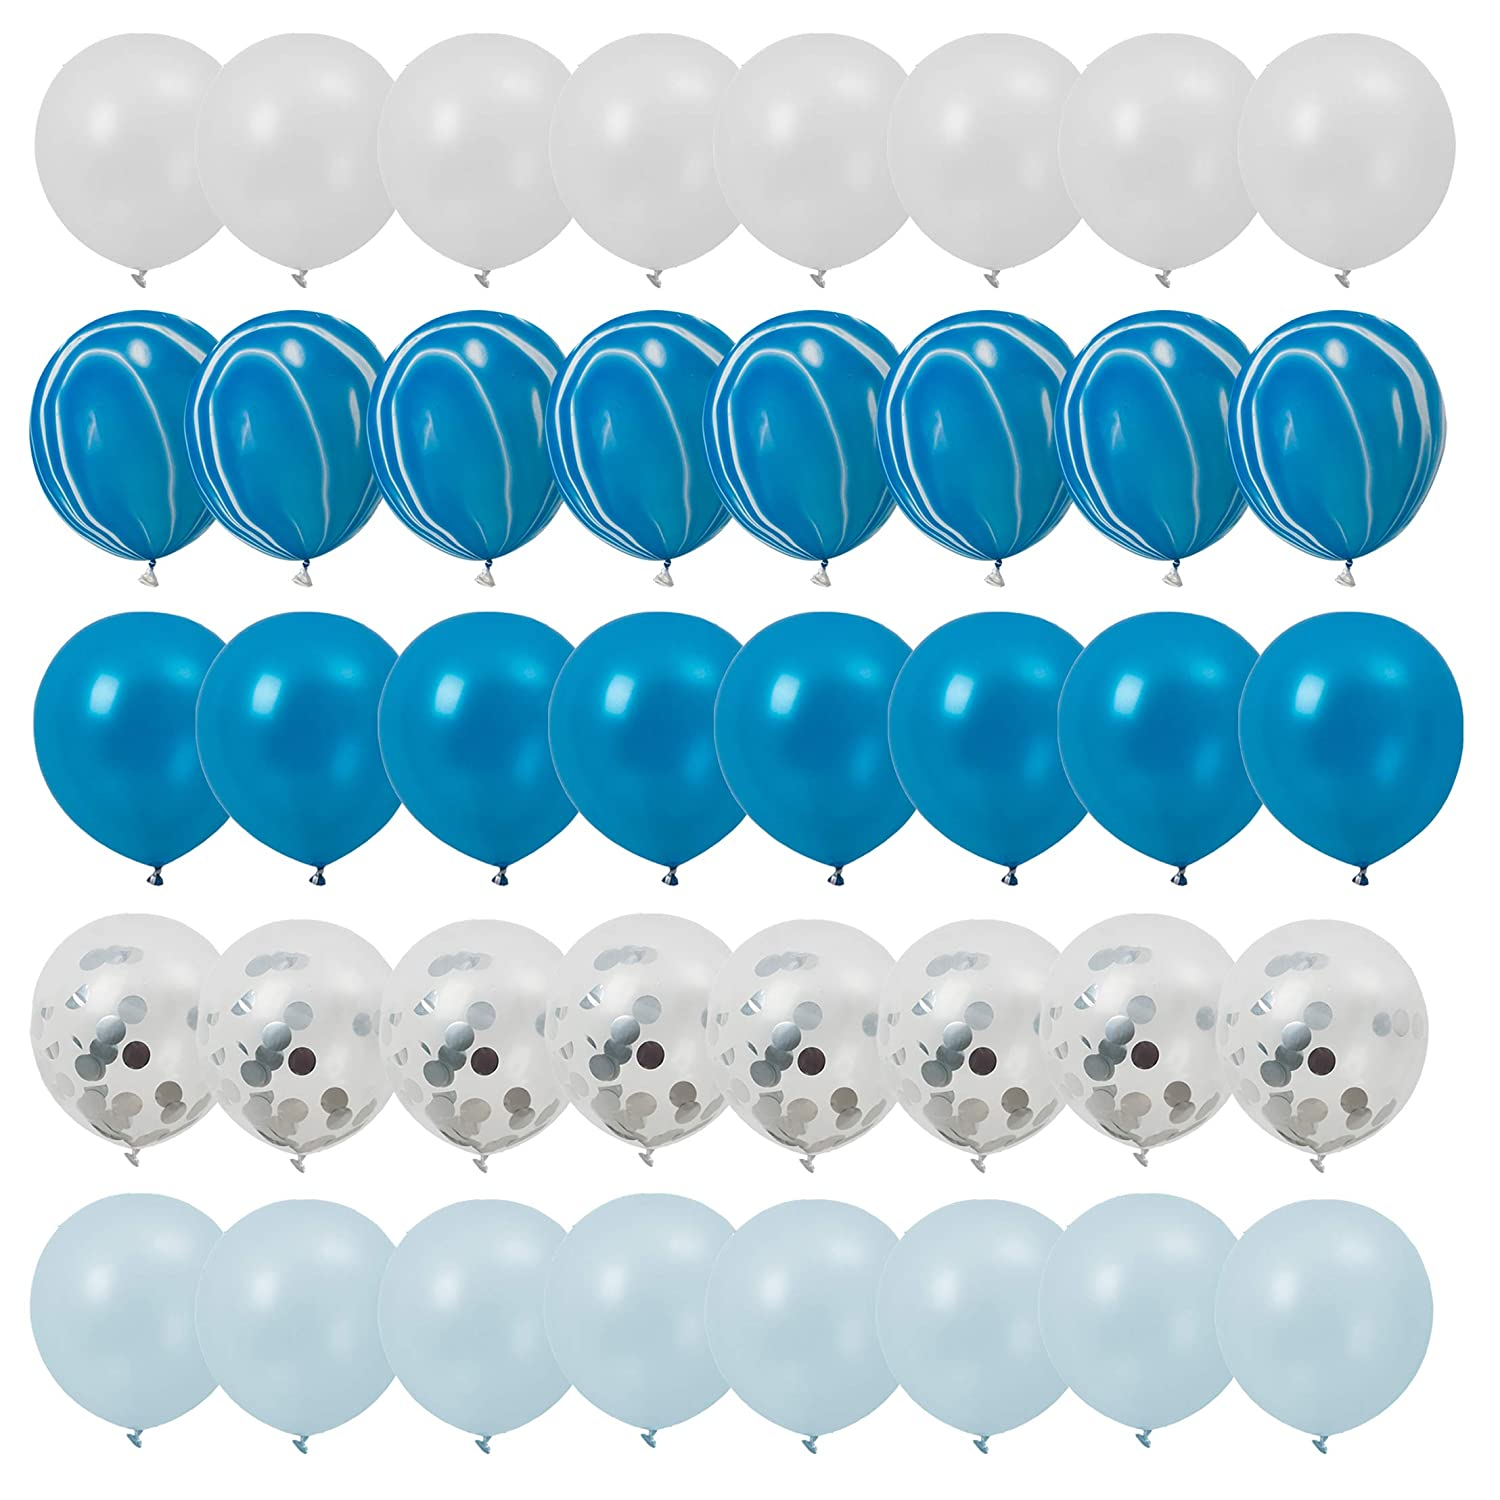 Latex Confetti Balloons, 20 Pcs Blue and Sliver Biodegradable Balloon for Party Wedding Decoration Superate